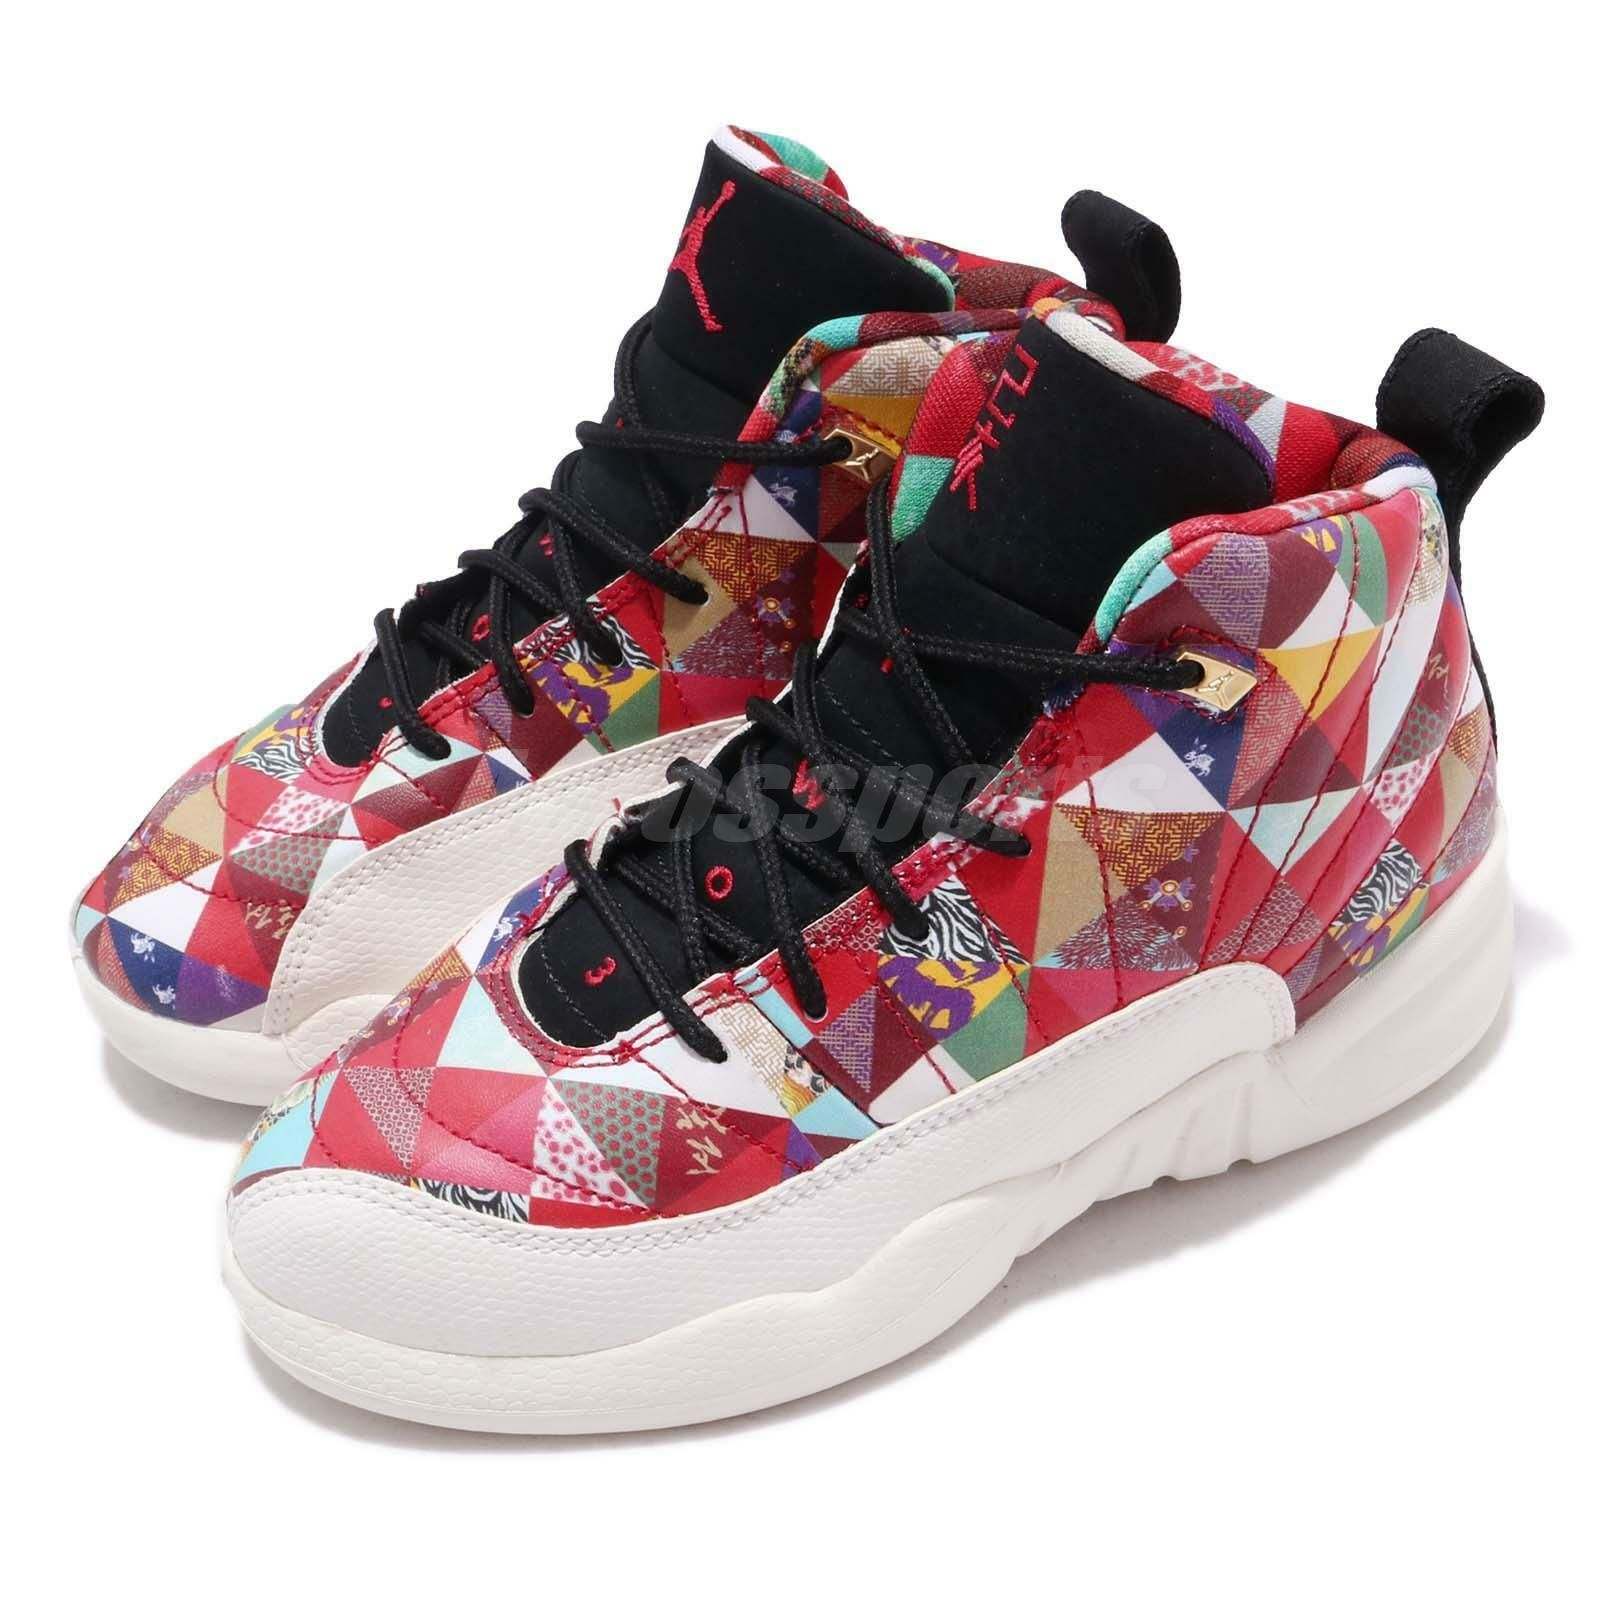 hot sale online 3aa9b 8f91e Nike Air Jordan 12 Retro CNY XII 2019 Chinese New Year Men Women Kids TD